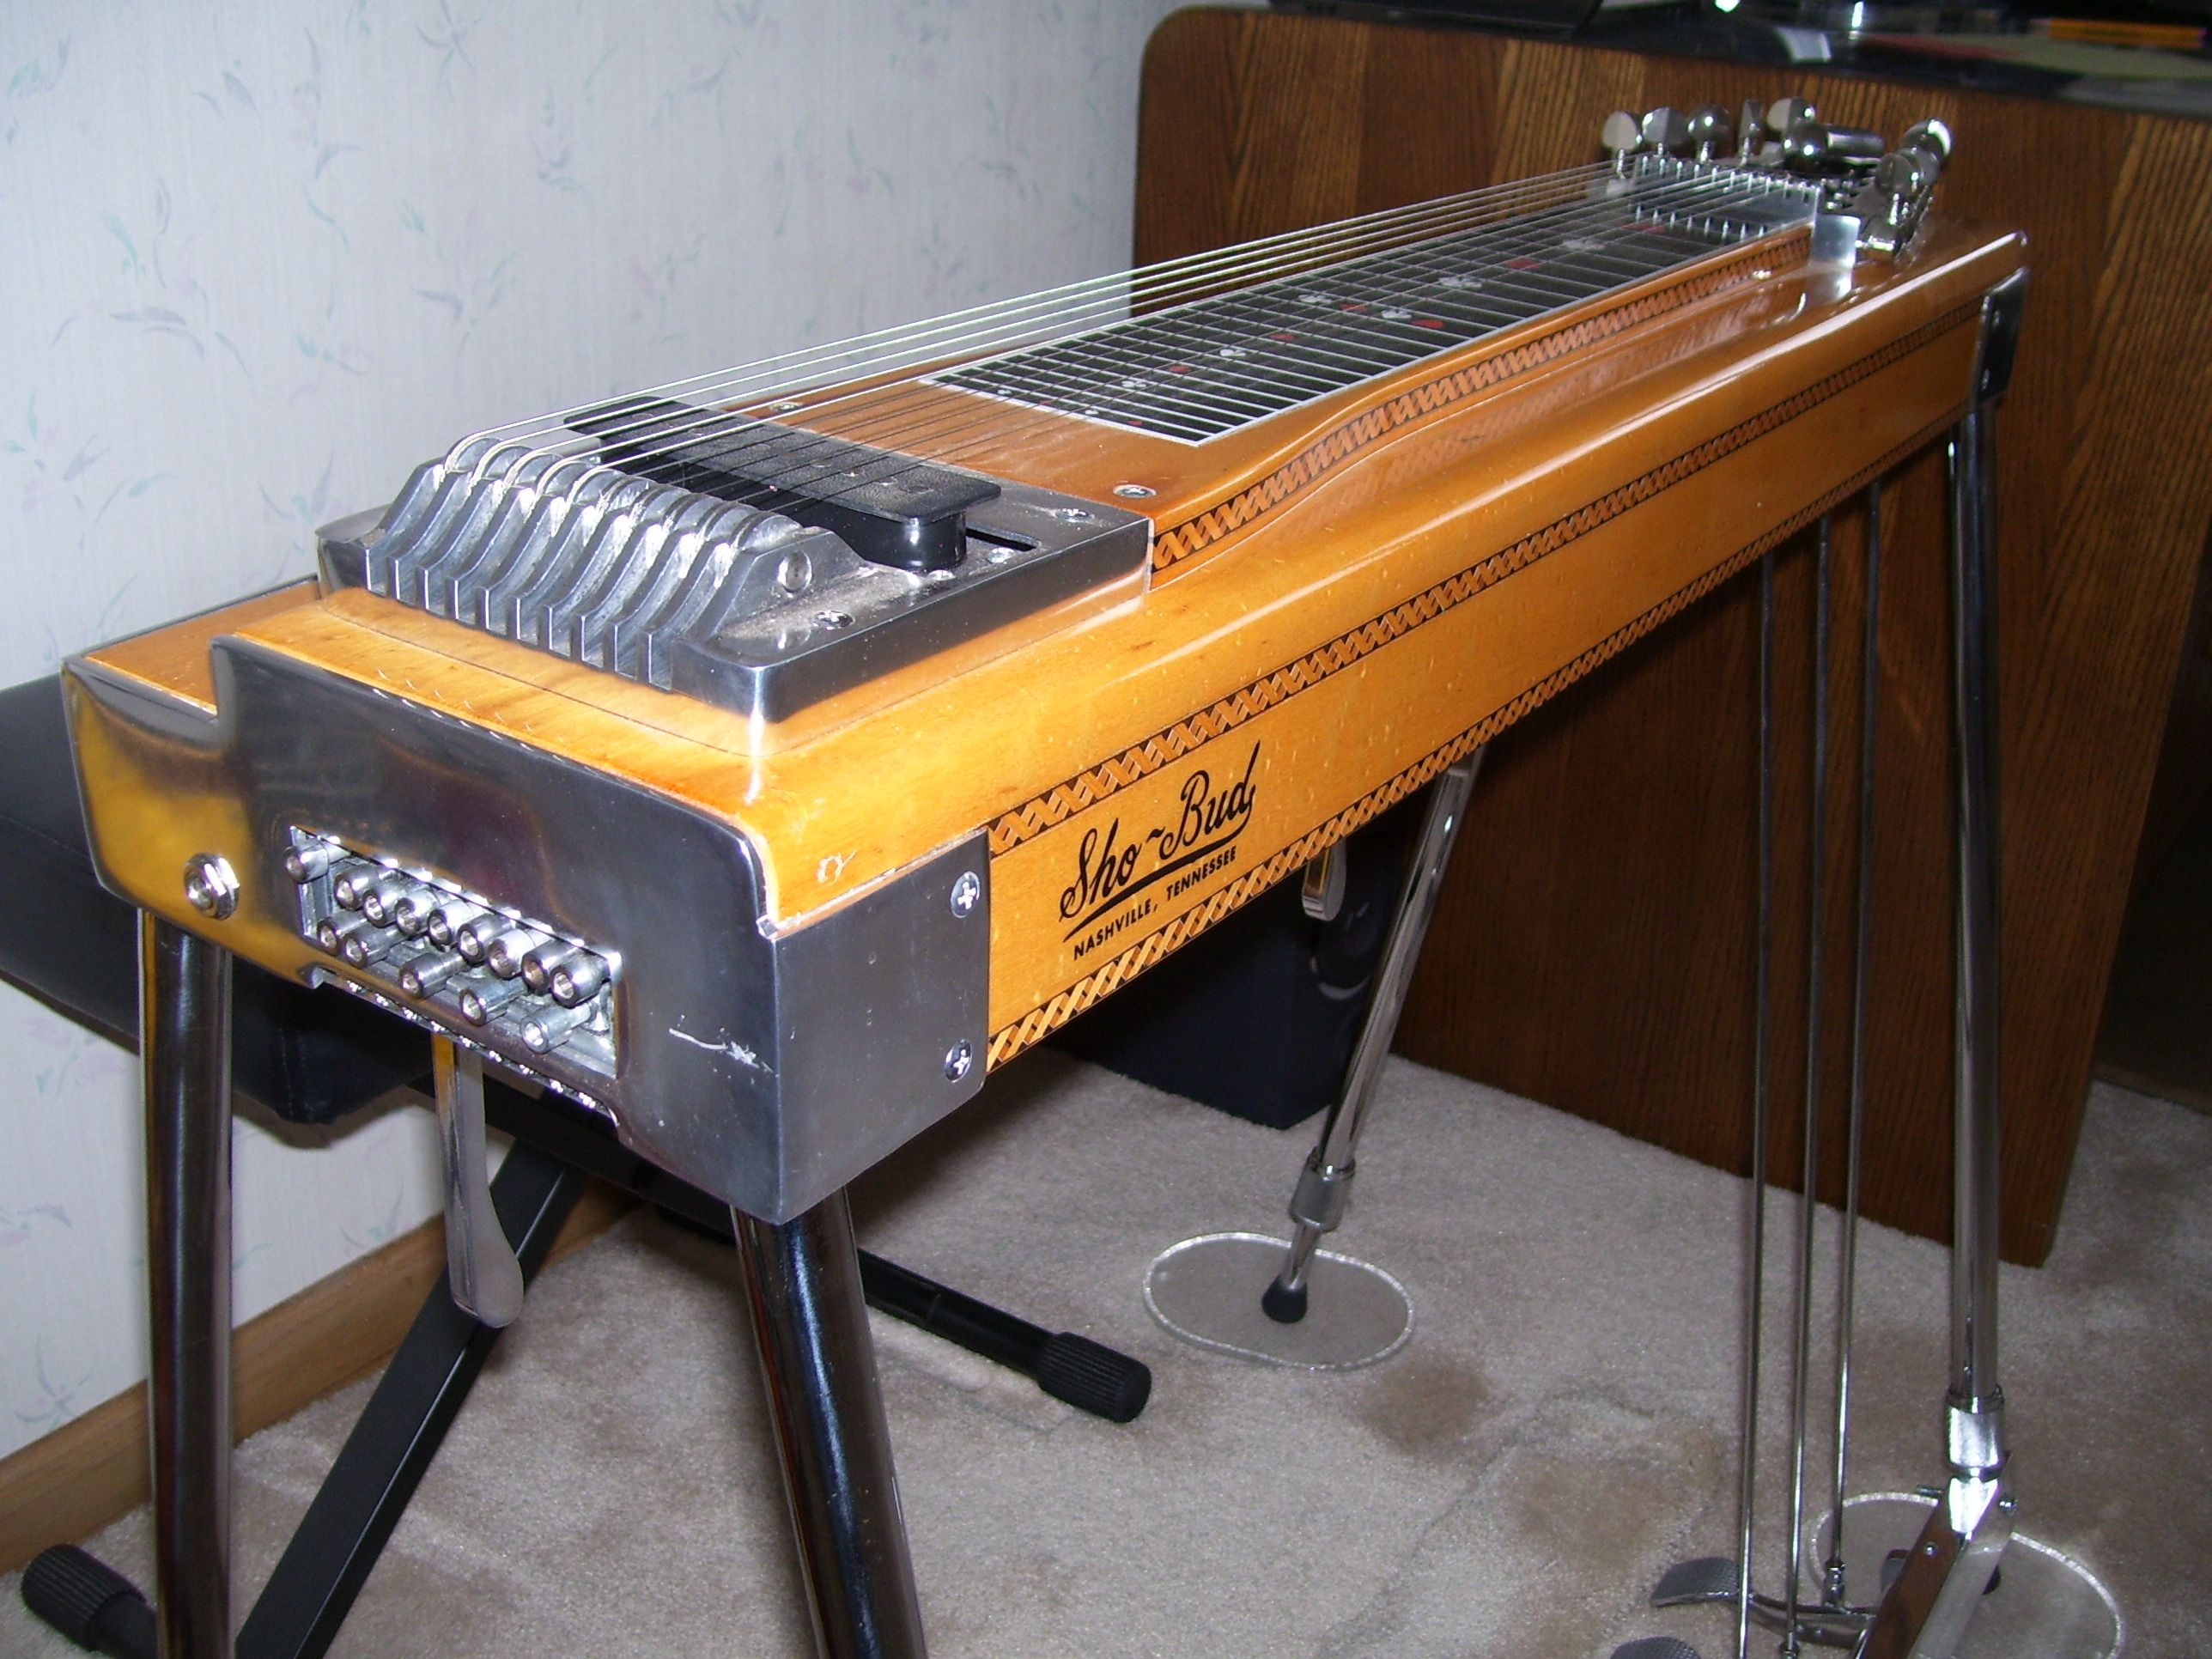 My Personal Vintage 1973 Sho Bud S 10 Pedal Steel Guitar Pedal Steel Guitar Steel Guitar Rare Guitars